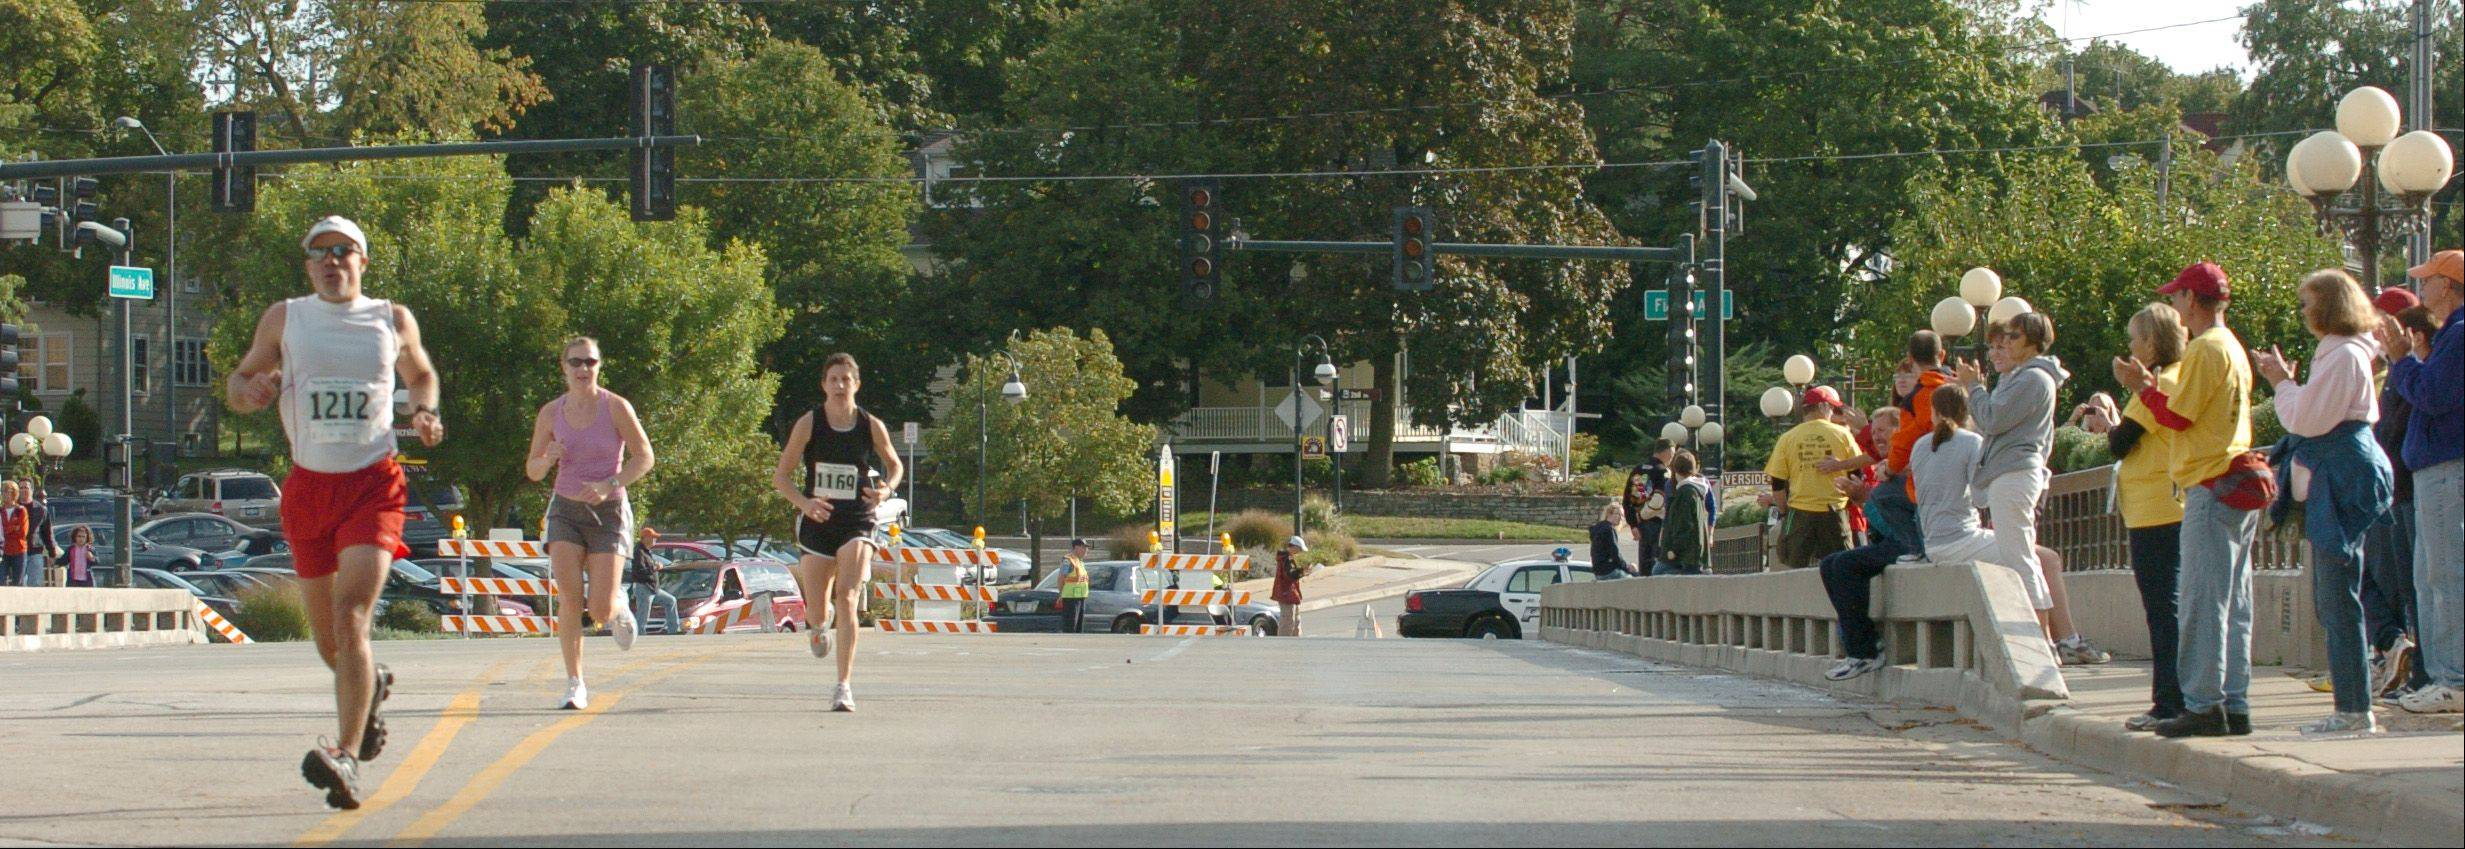 The top 50 runners slowly start to trickle in at the Dick Pond Fox Valley Marathon in St. Charles last September 2010. More than 1,000 participants generally followed a path along the Fox River through several towns.